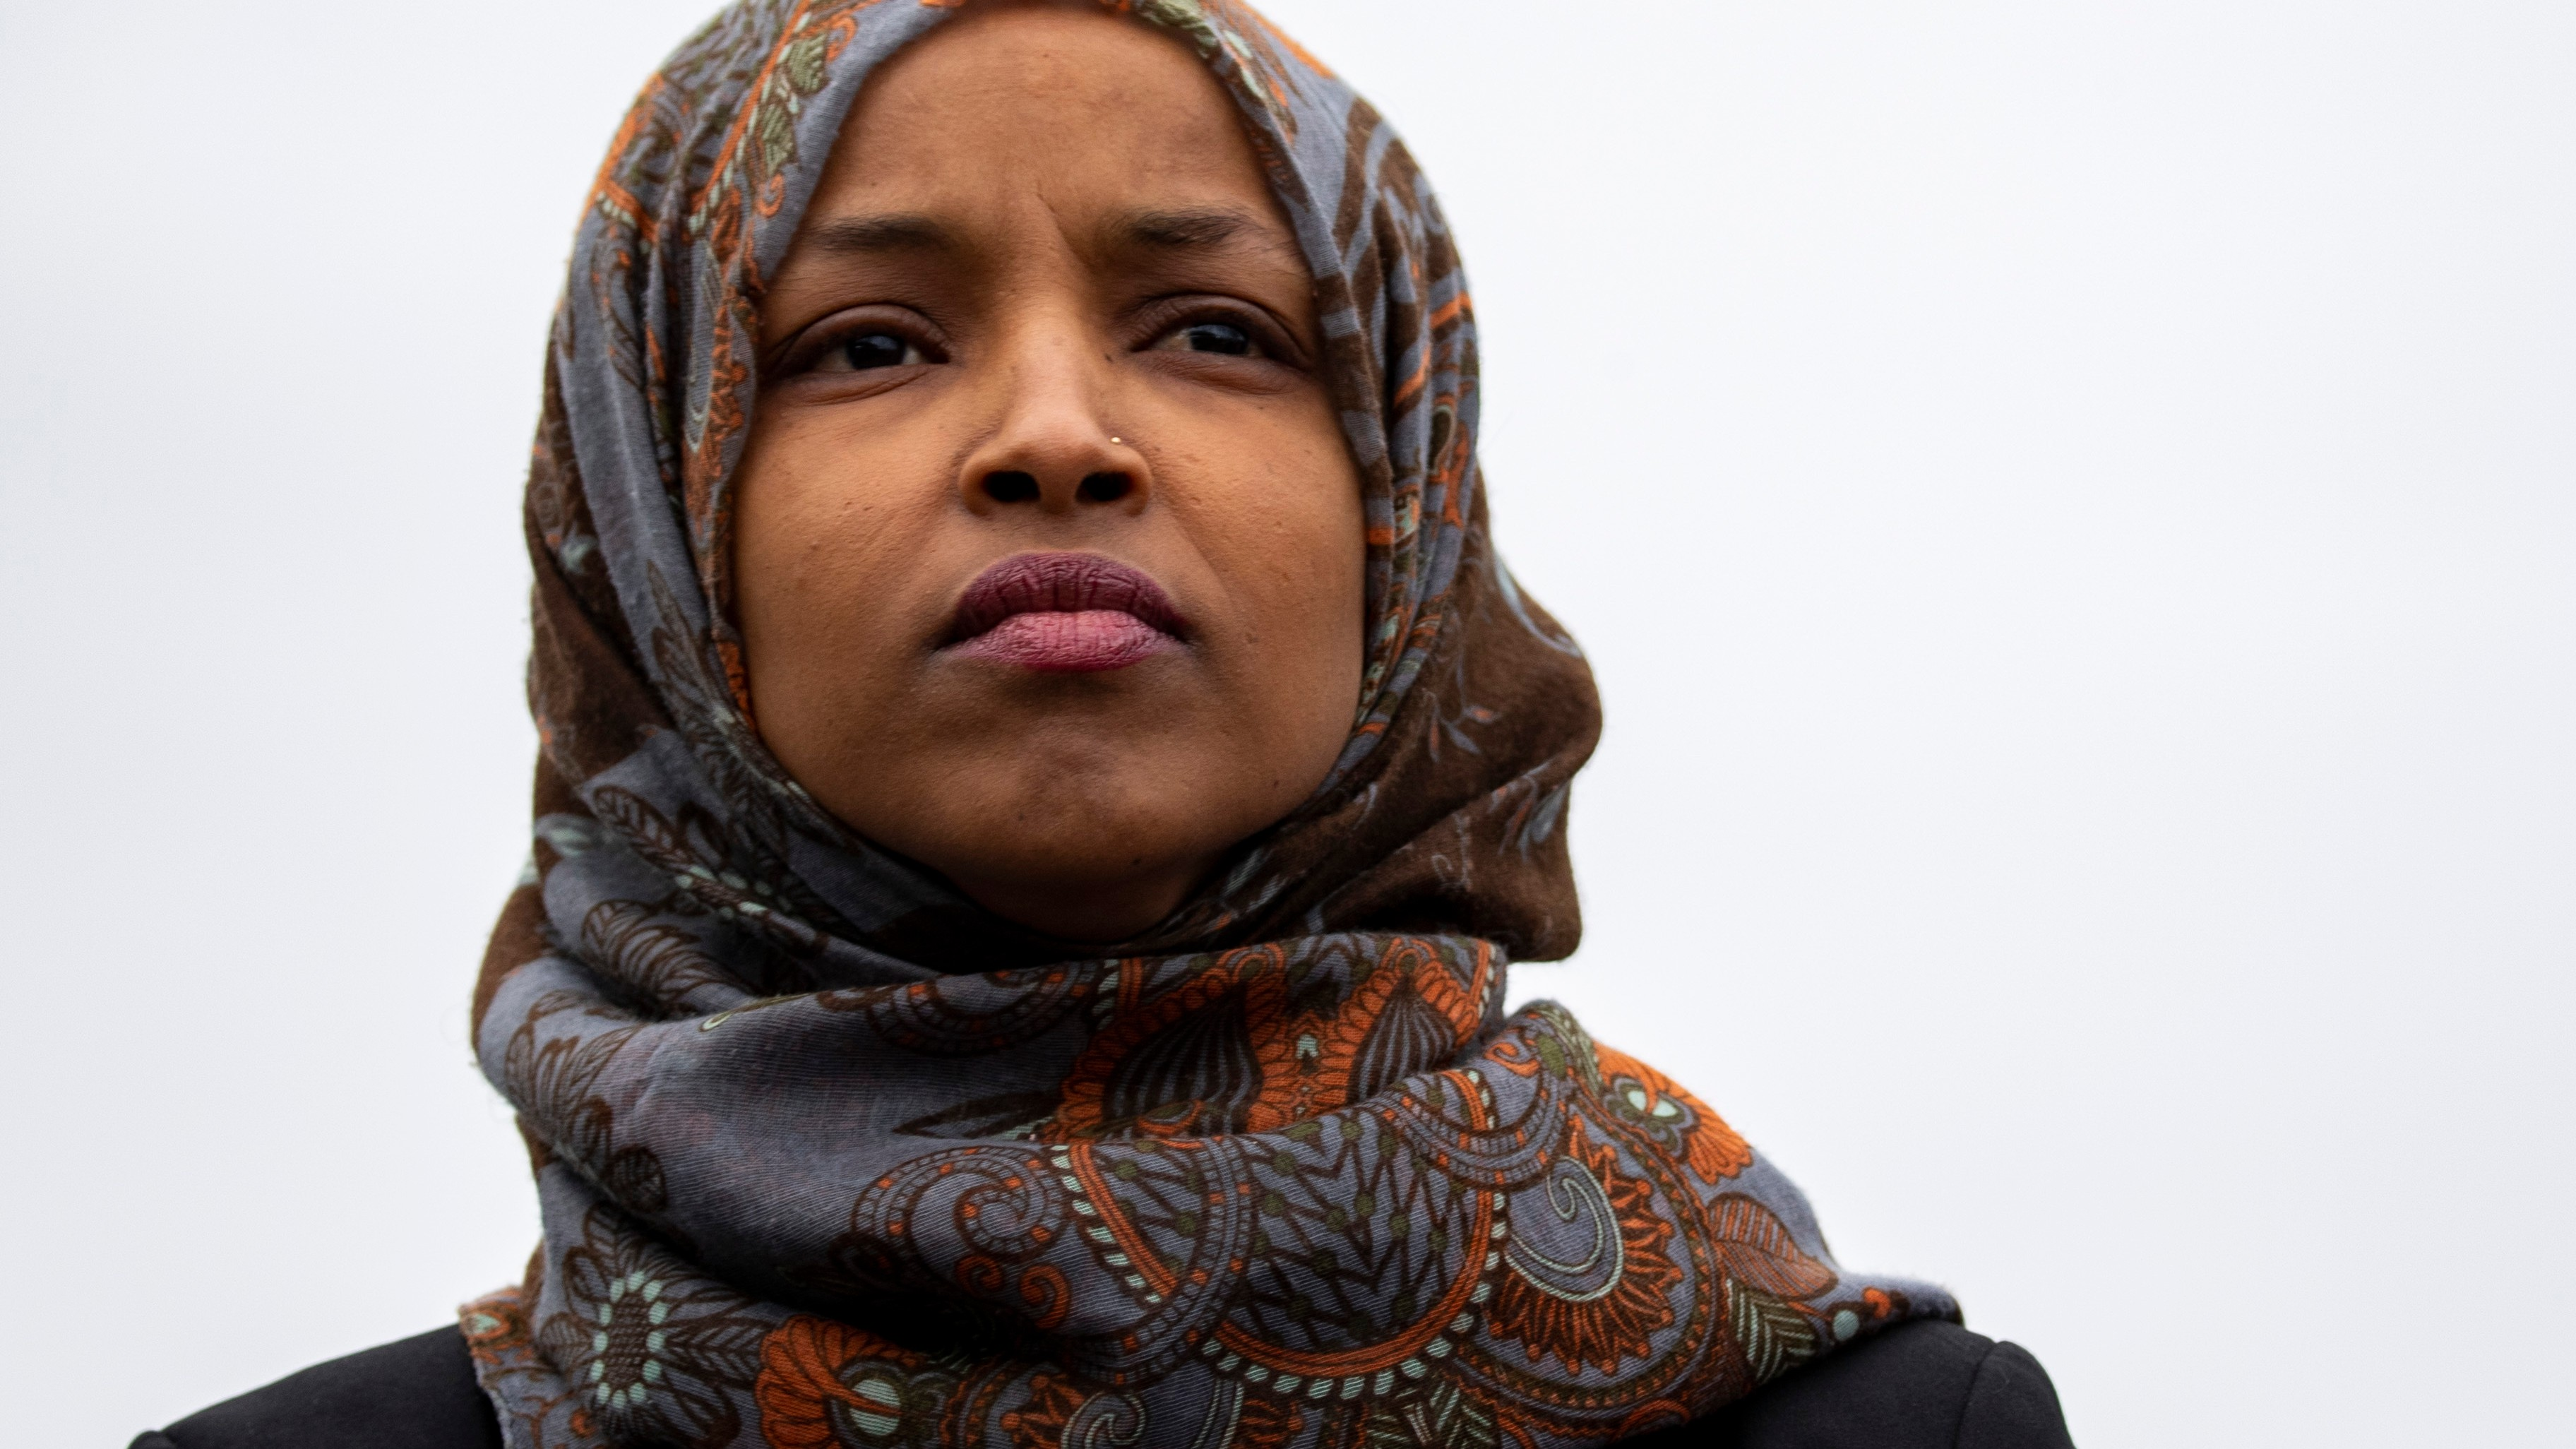 What you need to know about the backlash against Rep. Ilhan Omar